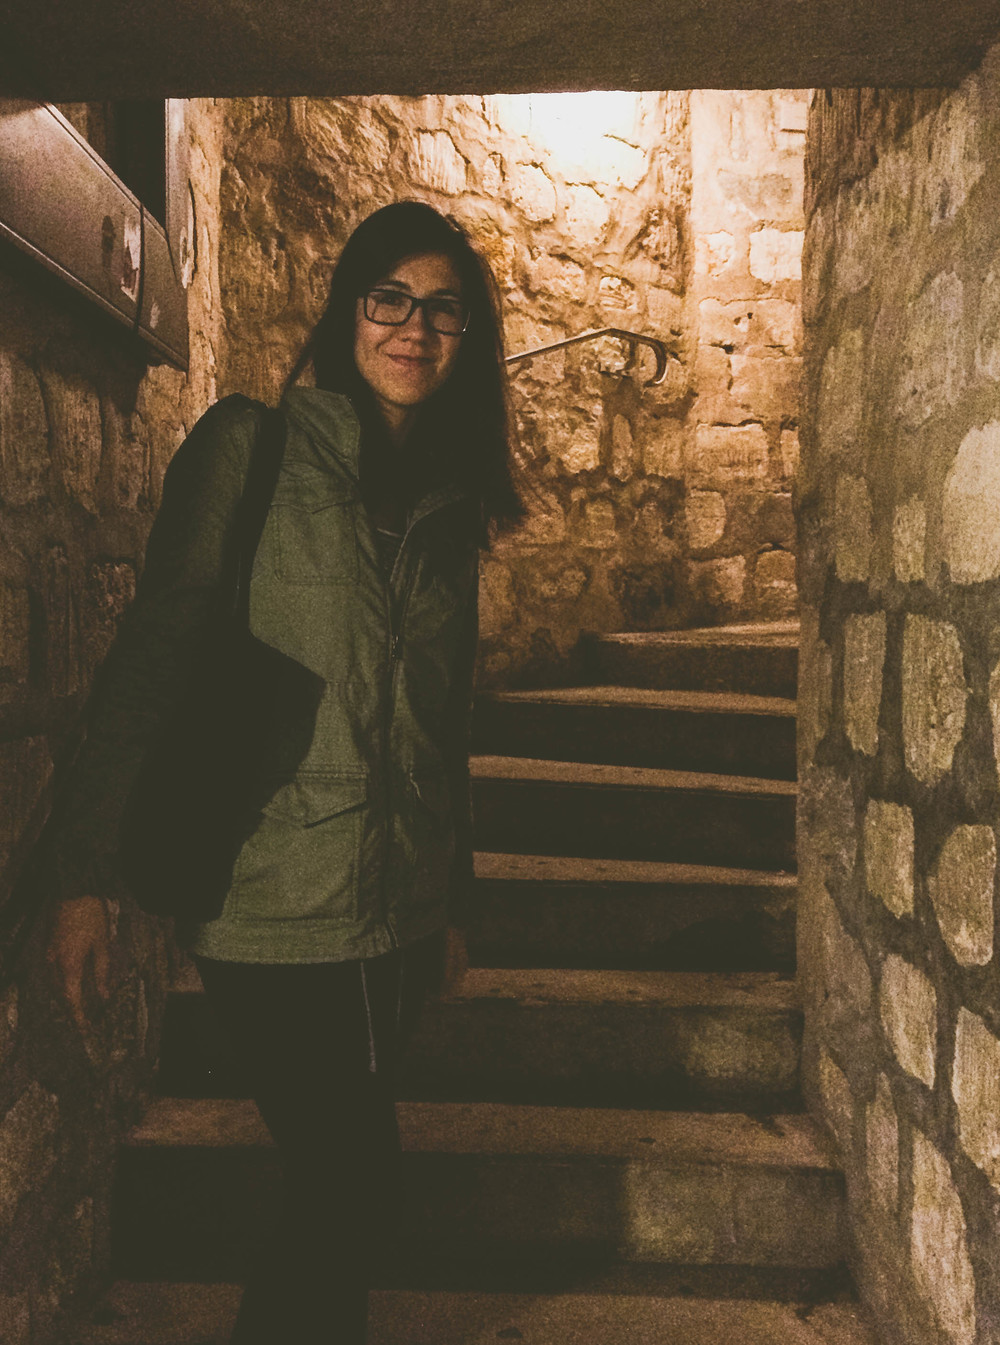 Me (Whitney) heading into the catacombs after the initial descent.